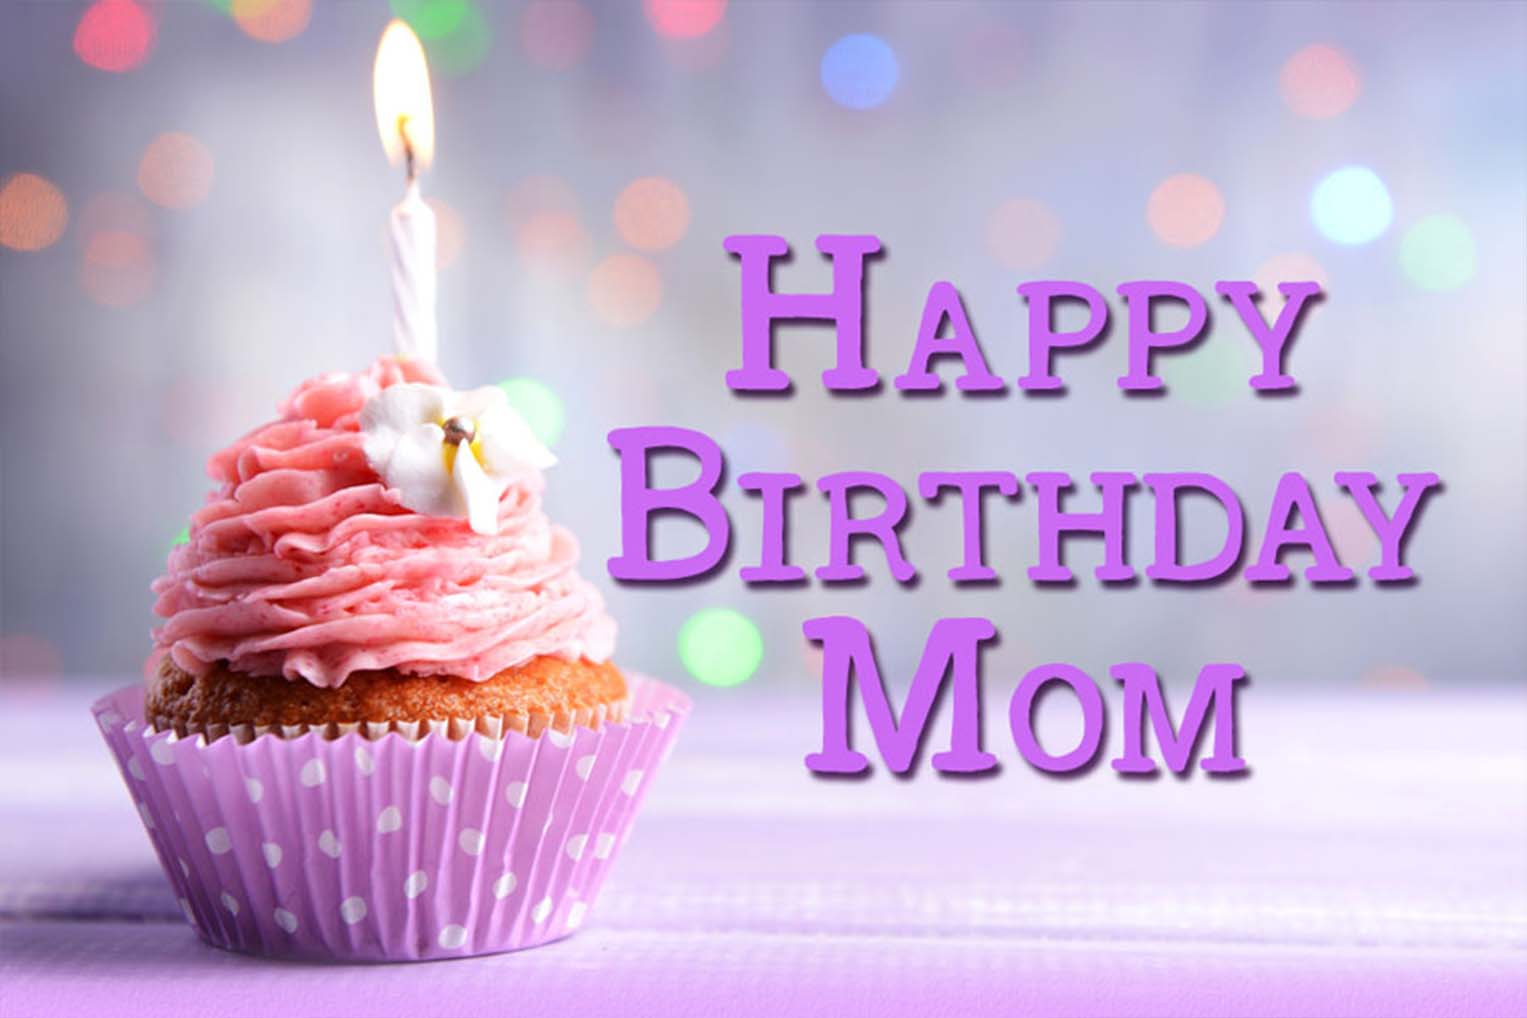 Happy Birthday Mom Meme Quote For Images